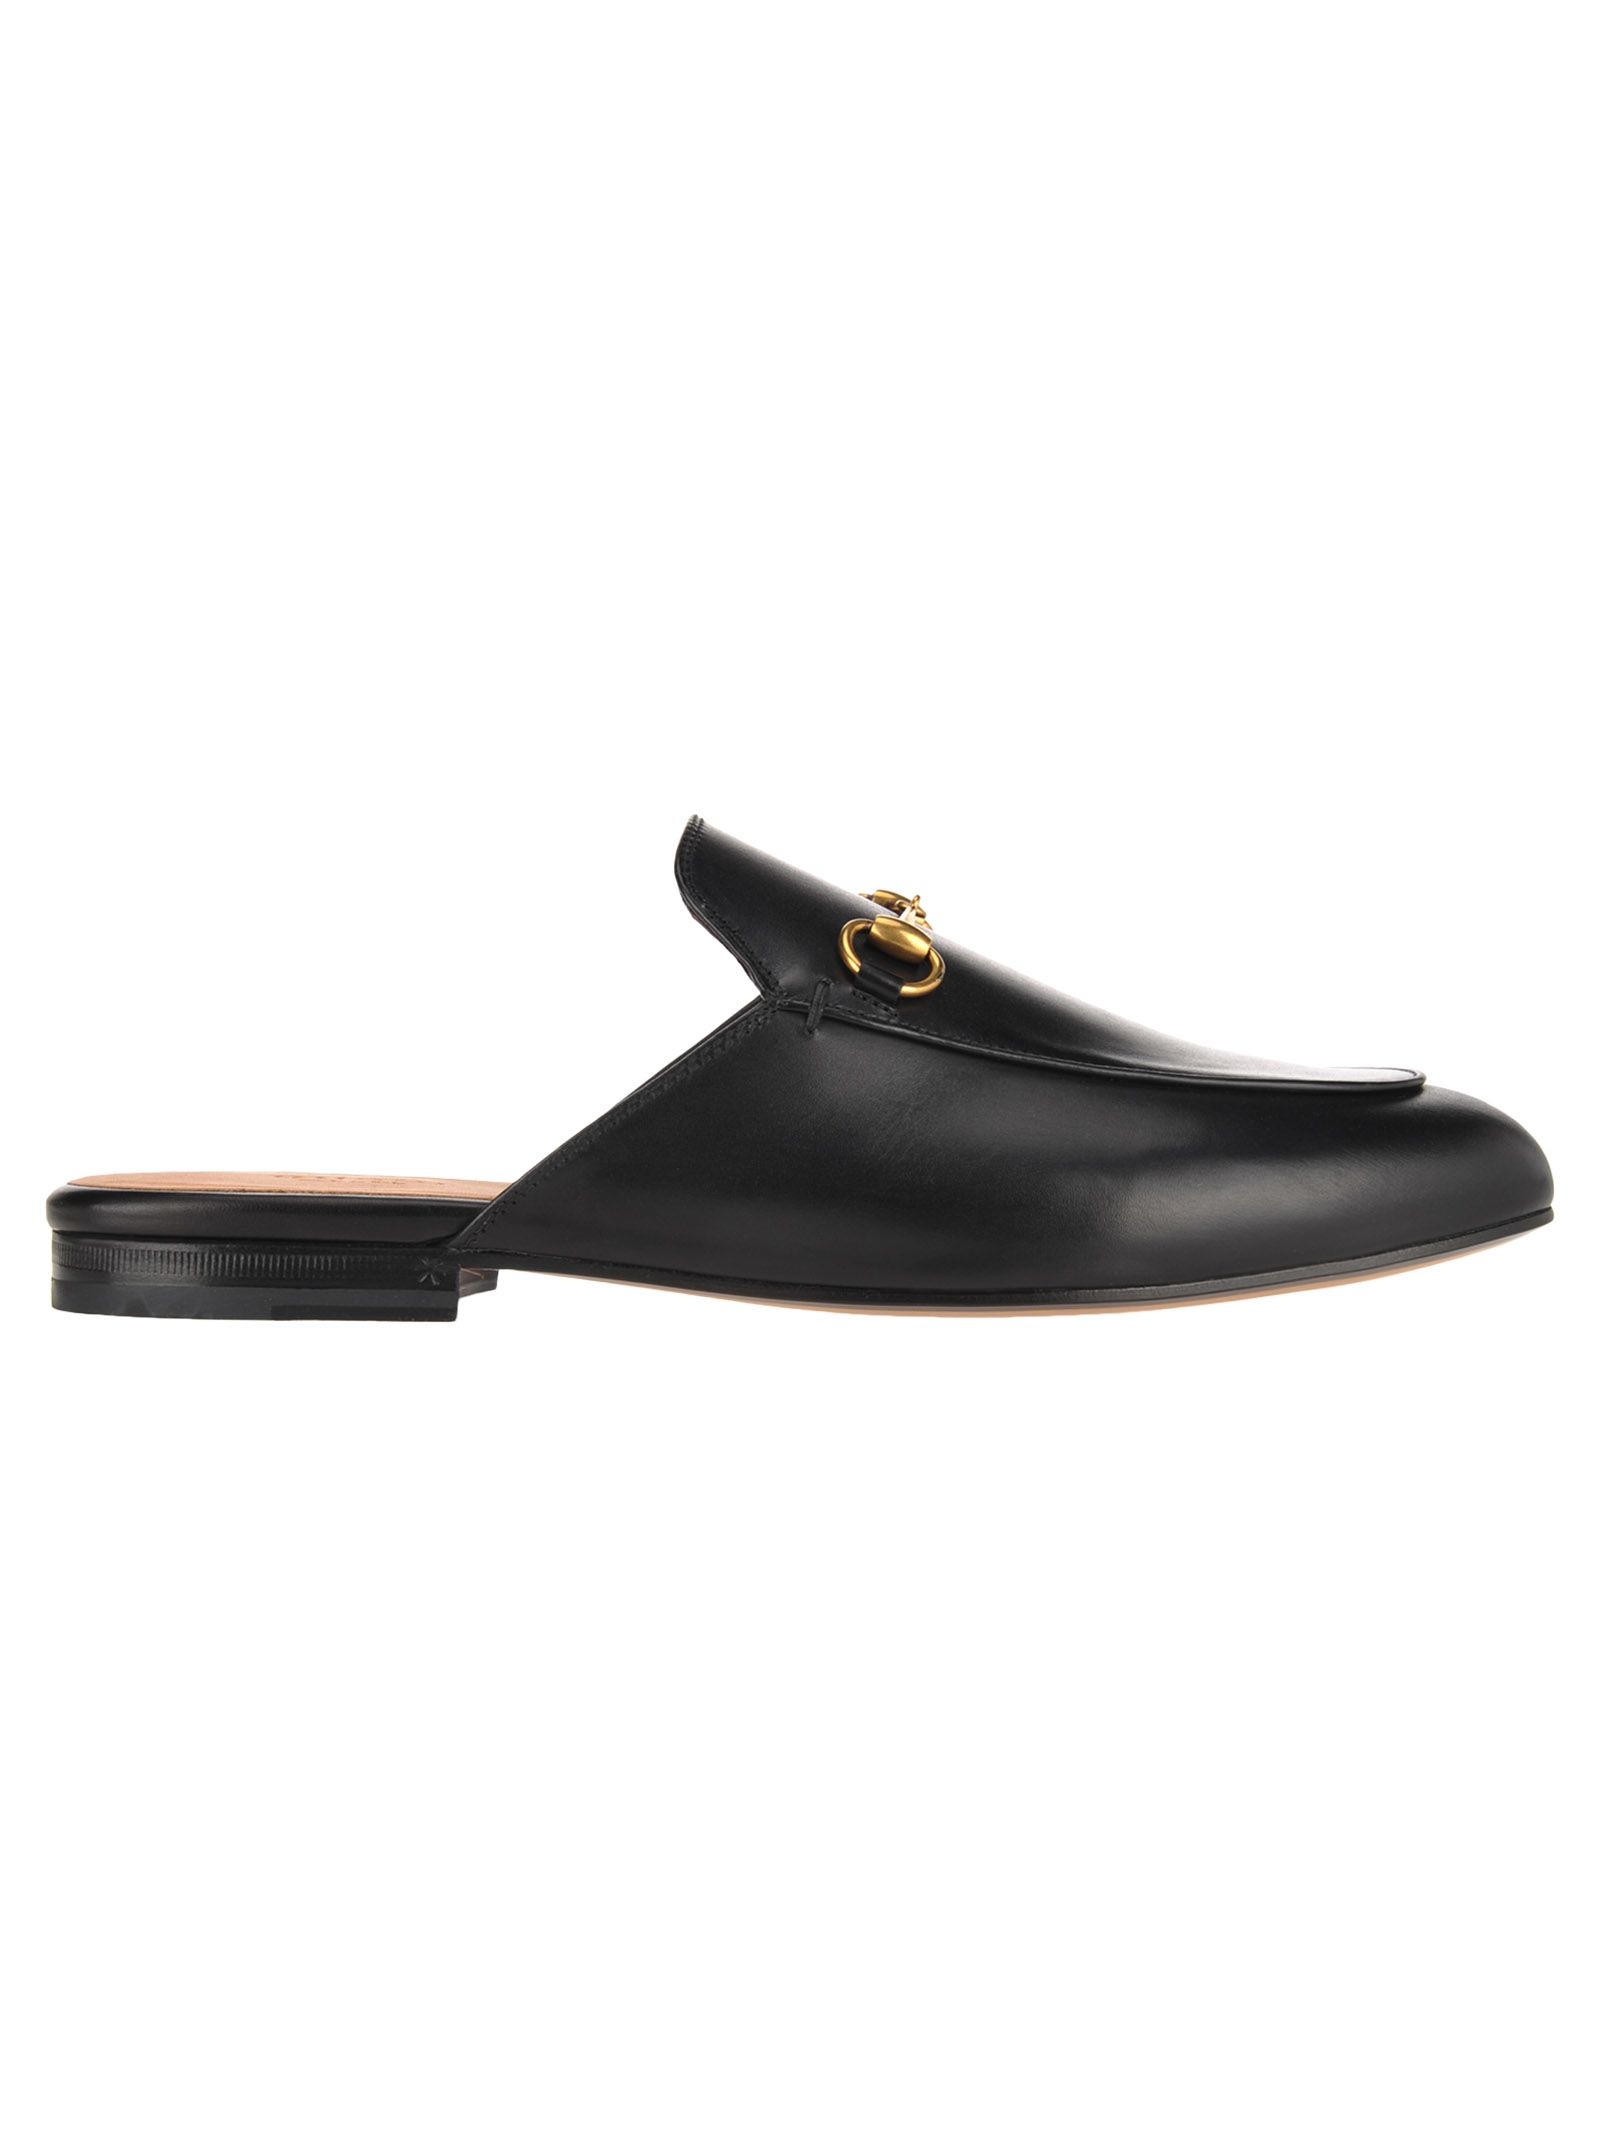 Gucci Shoes Gucci Princetown Leather Slipper